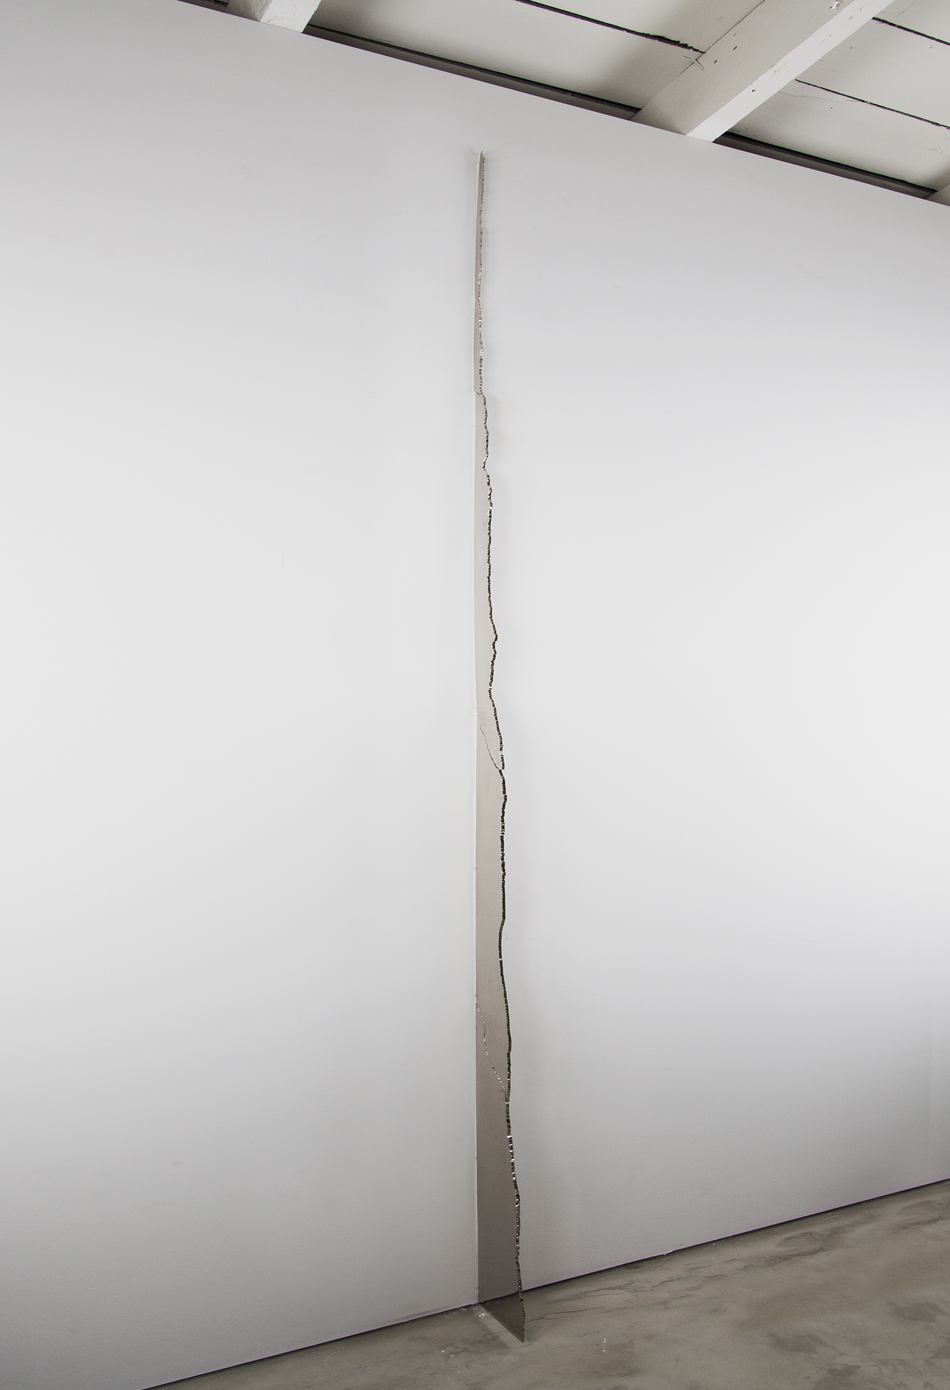 Seem, Seam from band, Nickel plated and mirror polished plasma cut steel, 8 X 120 inches, 2013